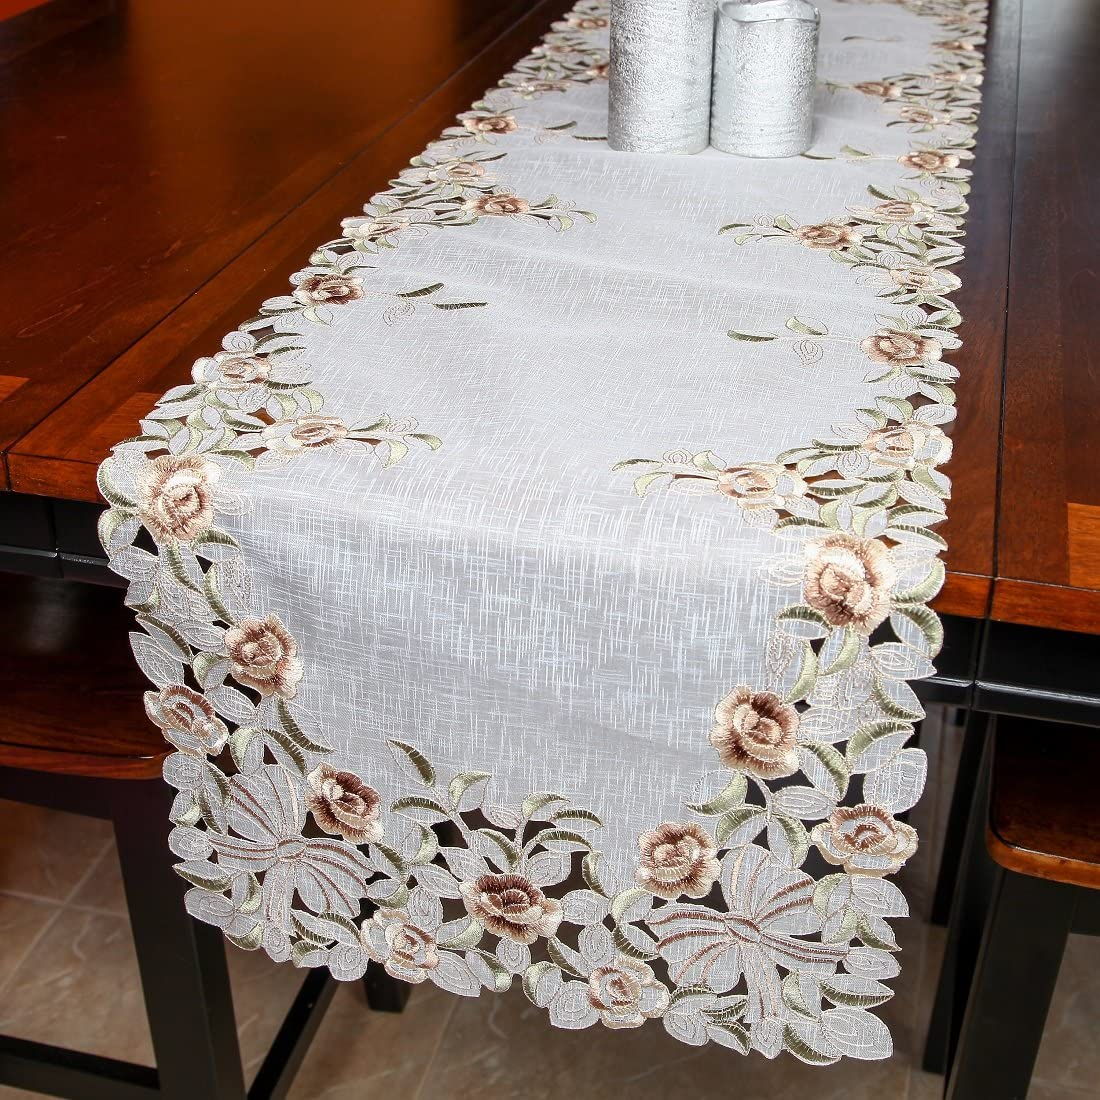 Home-X Embroidered Floral Organza Table Runner. Sage Green and Light Brown Flowers